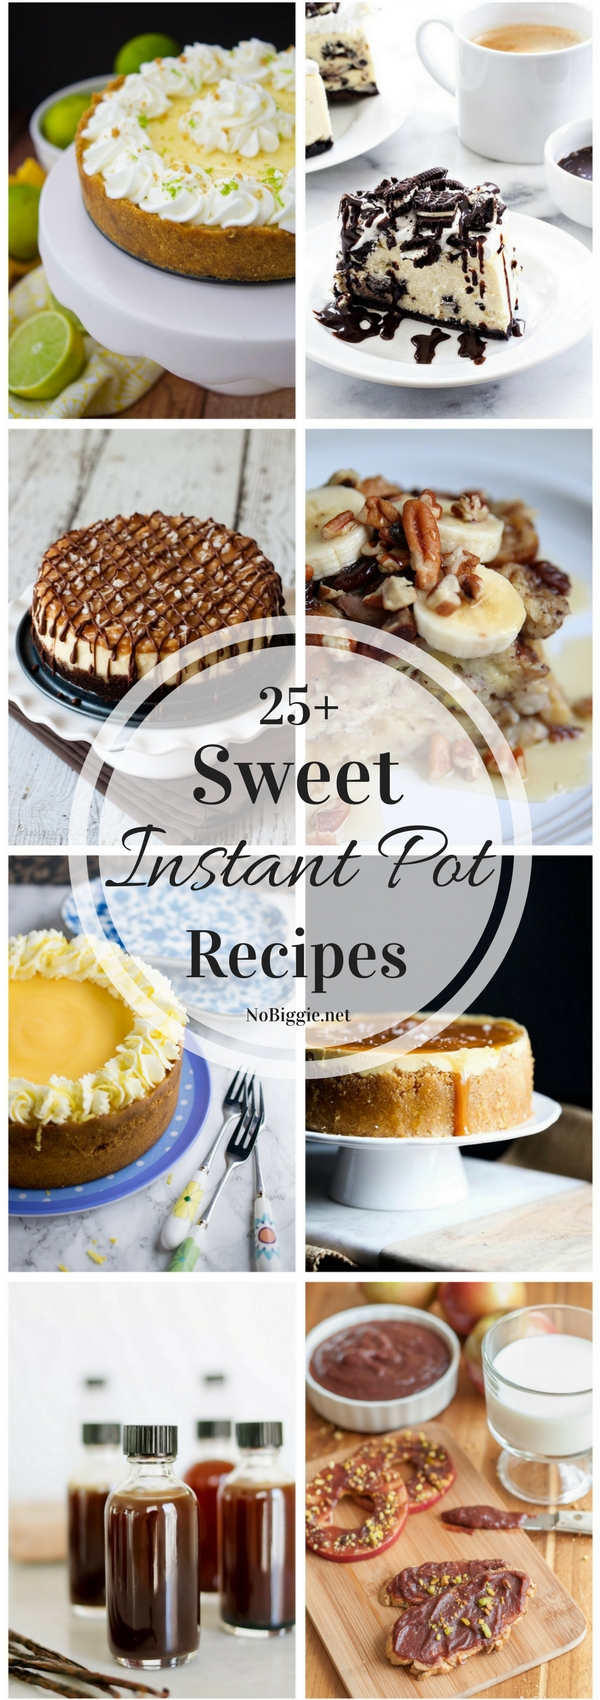 25+ Sweet Instant Pot Recipes | NoBiggie.net